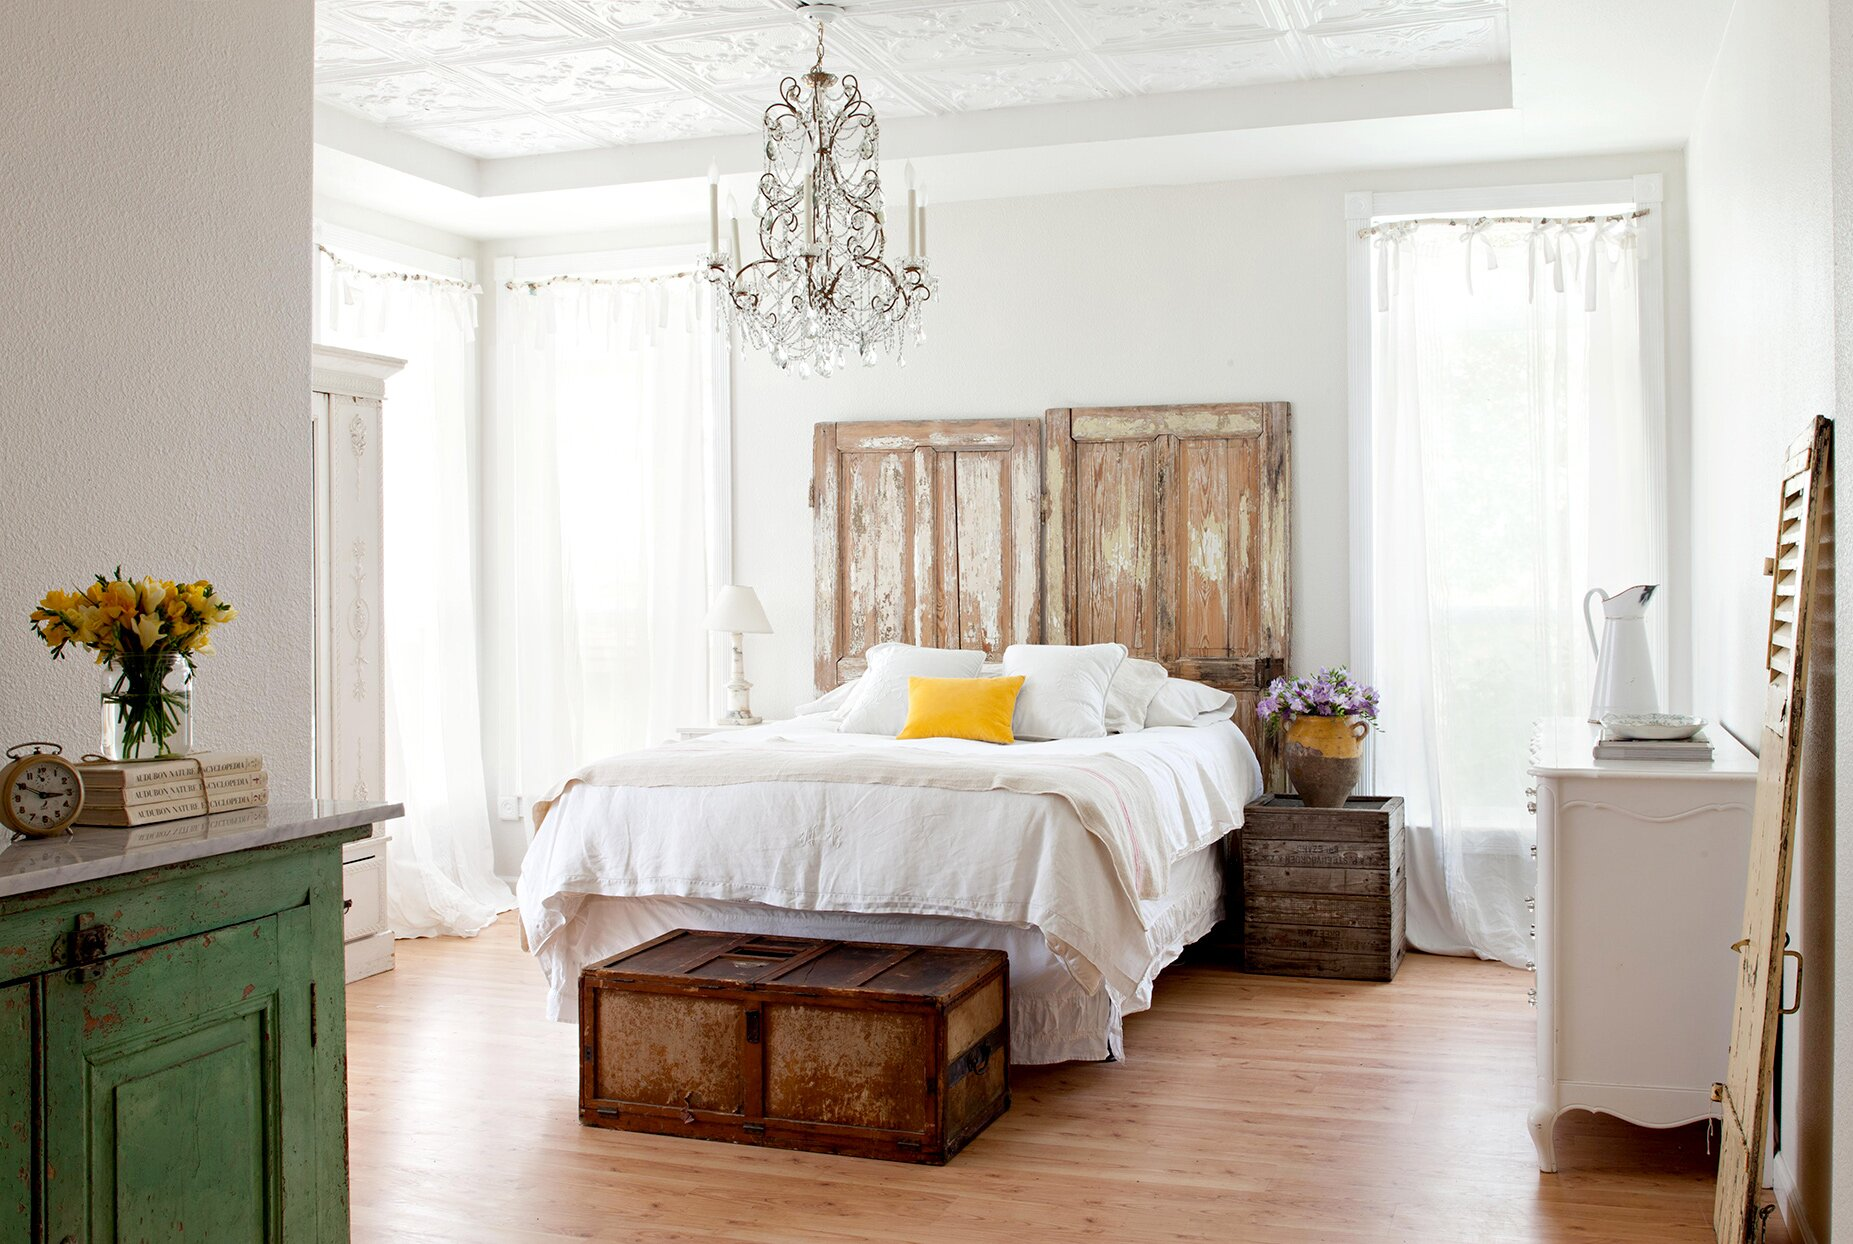 Eclectic style bedroom with cottage, rustic, and country style accents